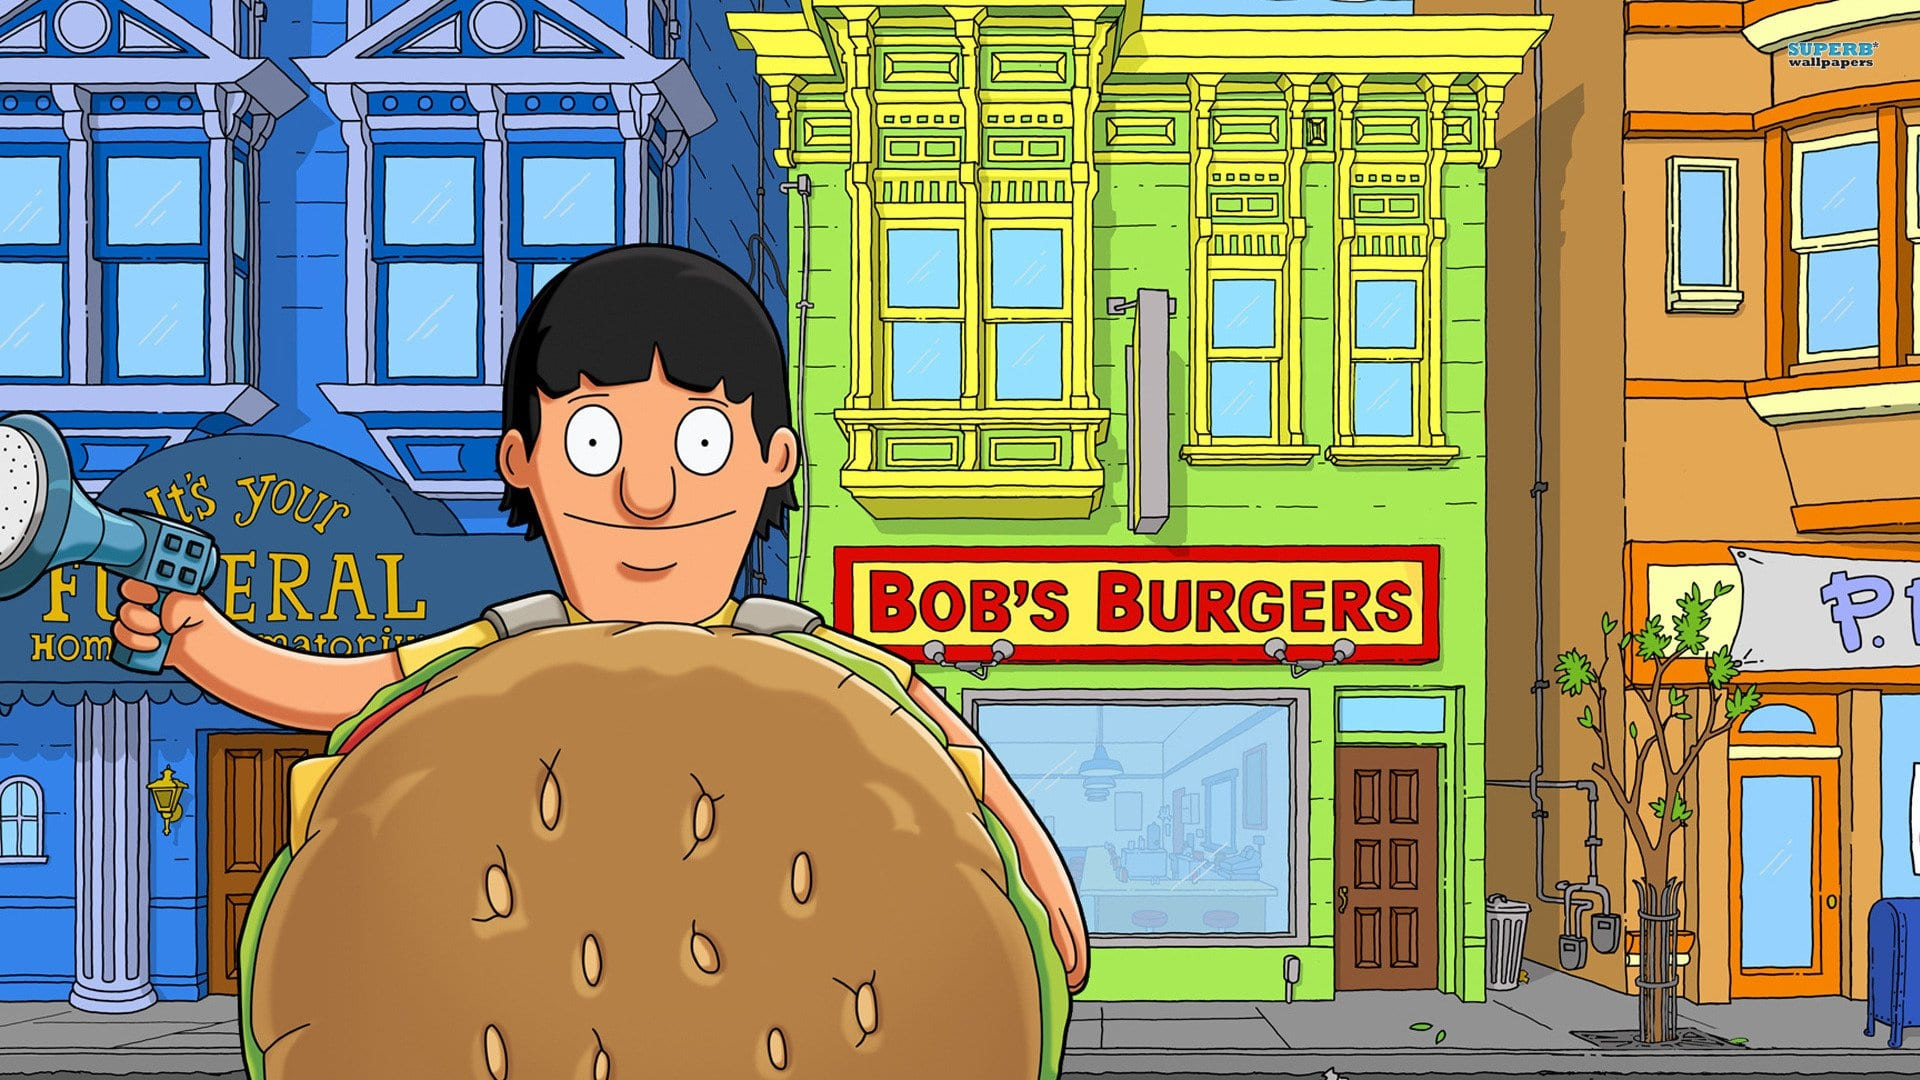 Bobs burgers pictures